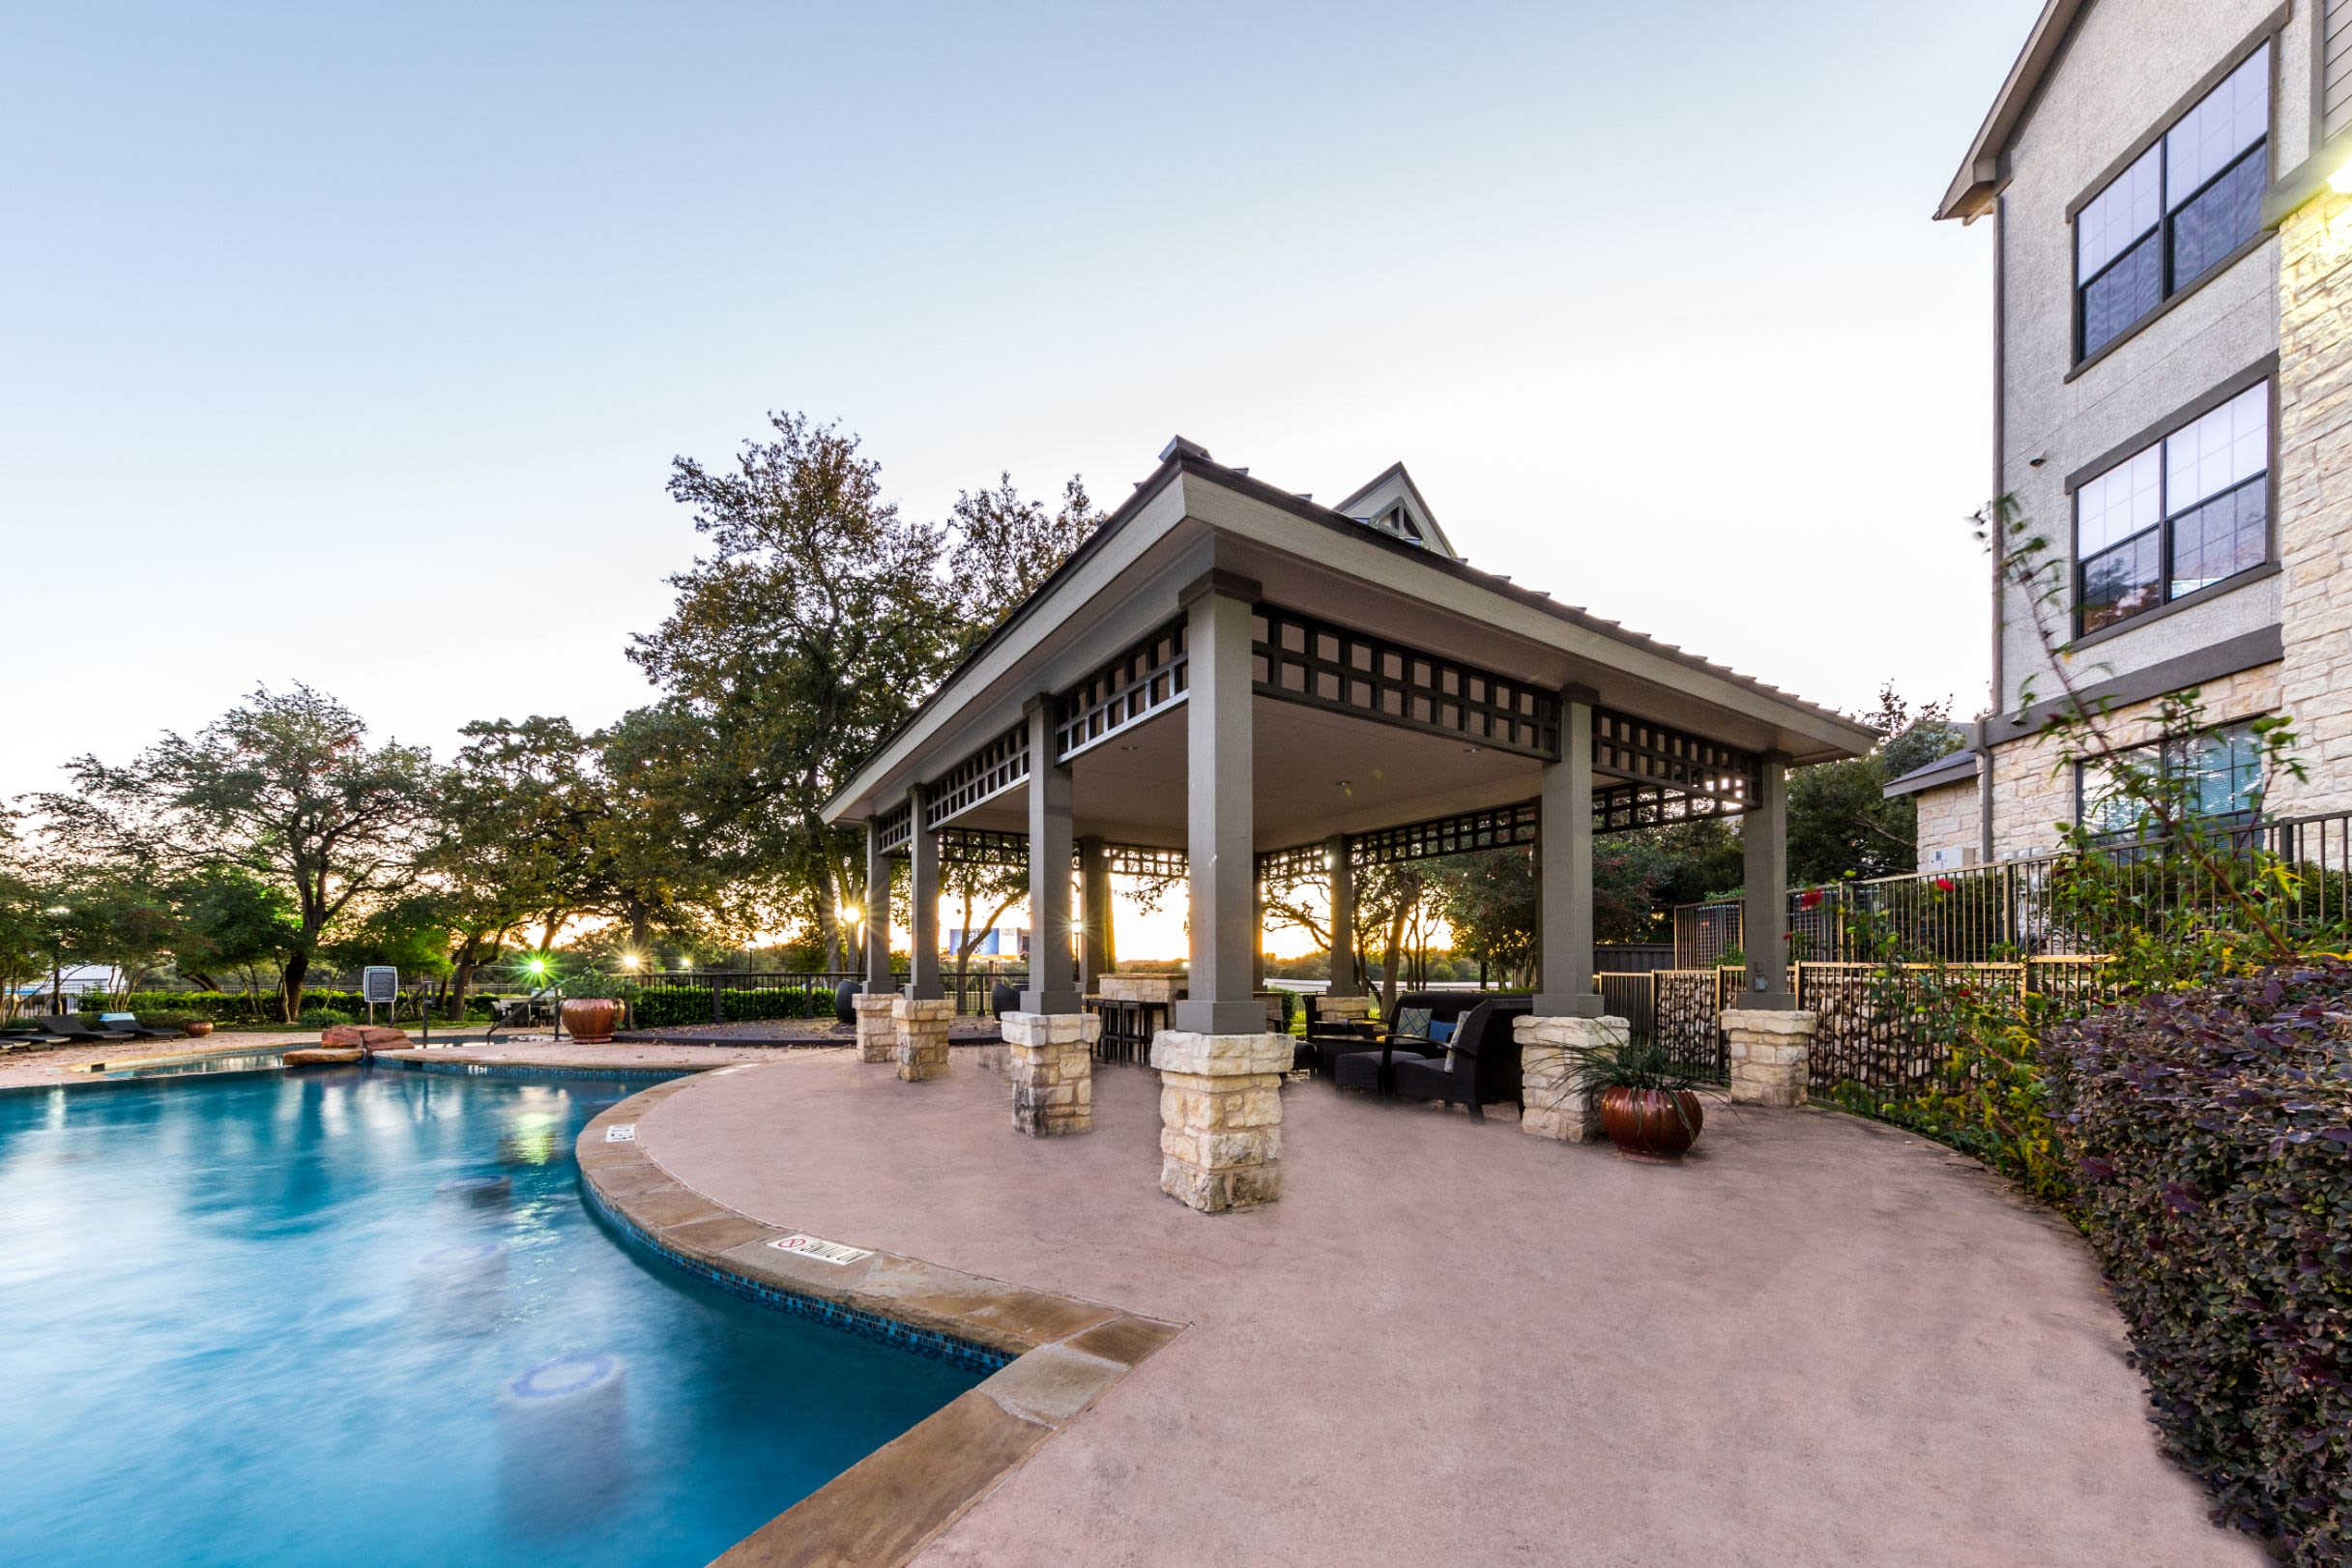 Swimming pool next to gazebo at The Marquis at Brushy Creek in Austin, Texas